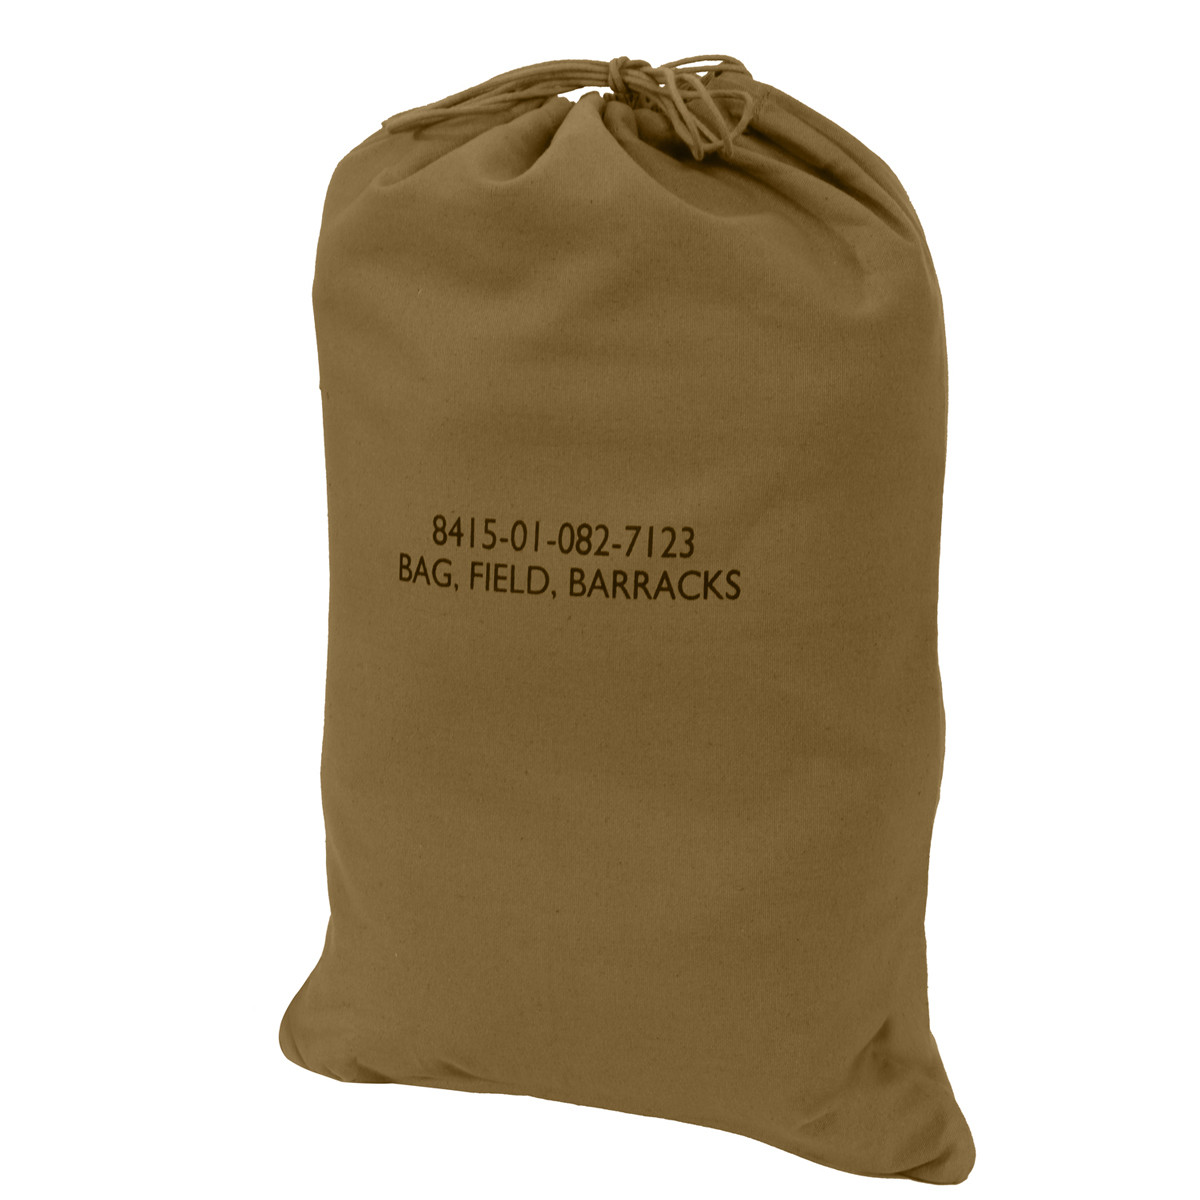 Shop G.I. Type Barracks Field Bags - Fatigues Army Navy Gear c64c9fb36fcce